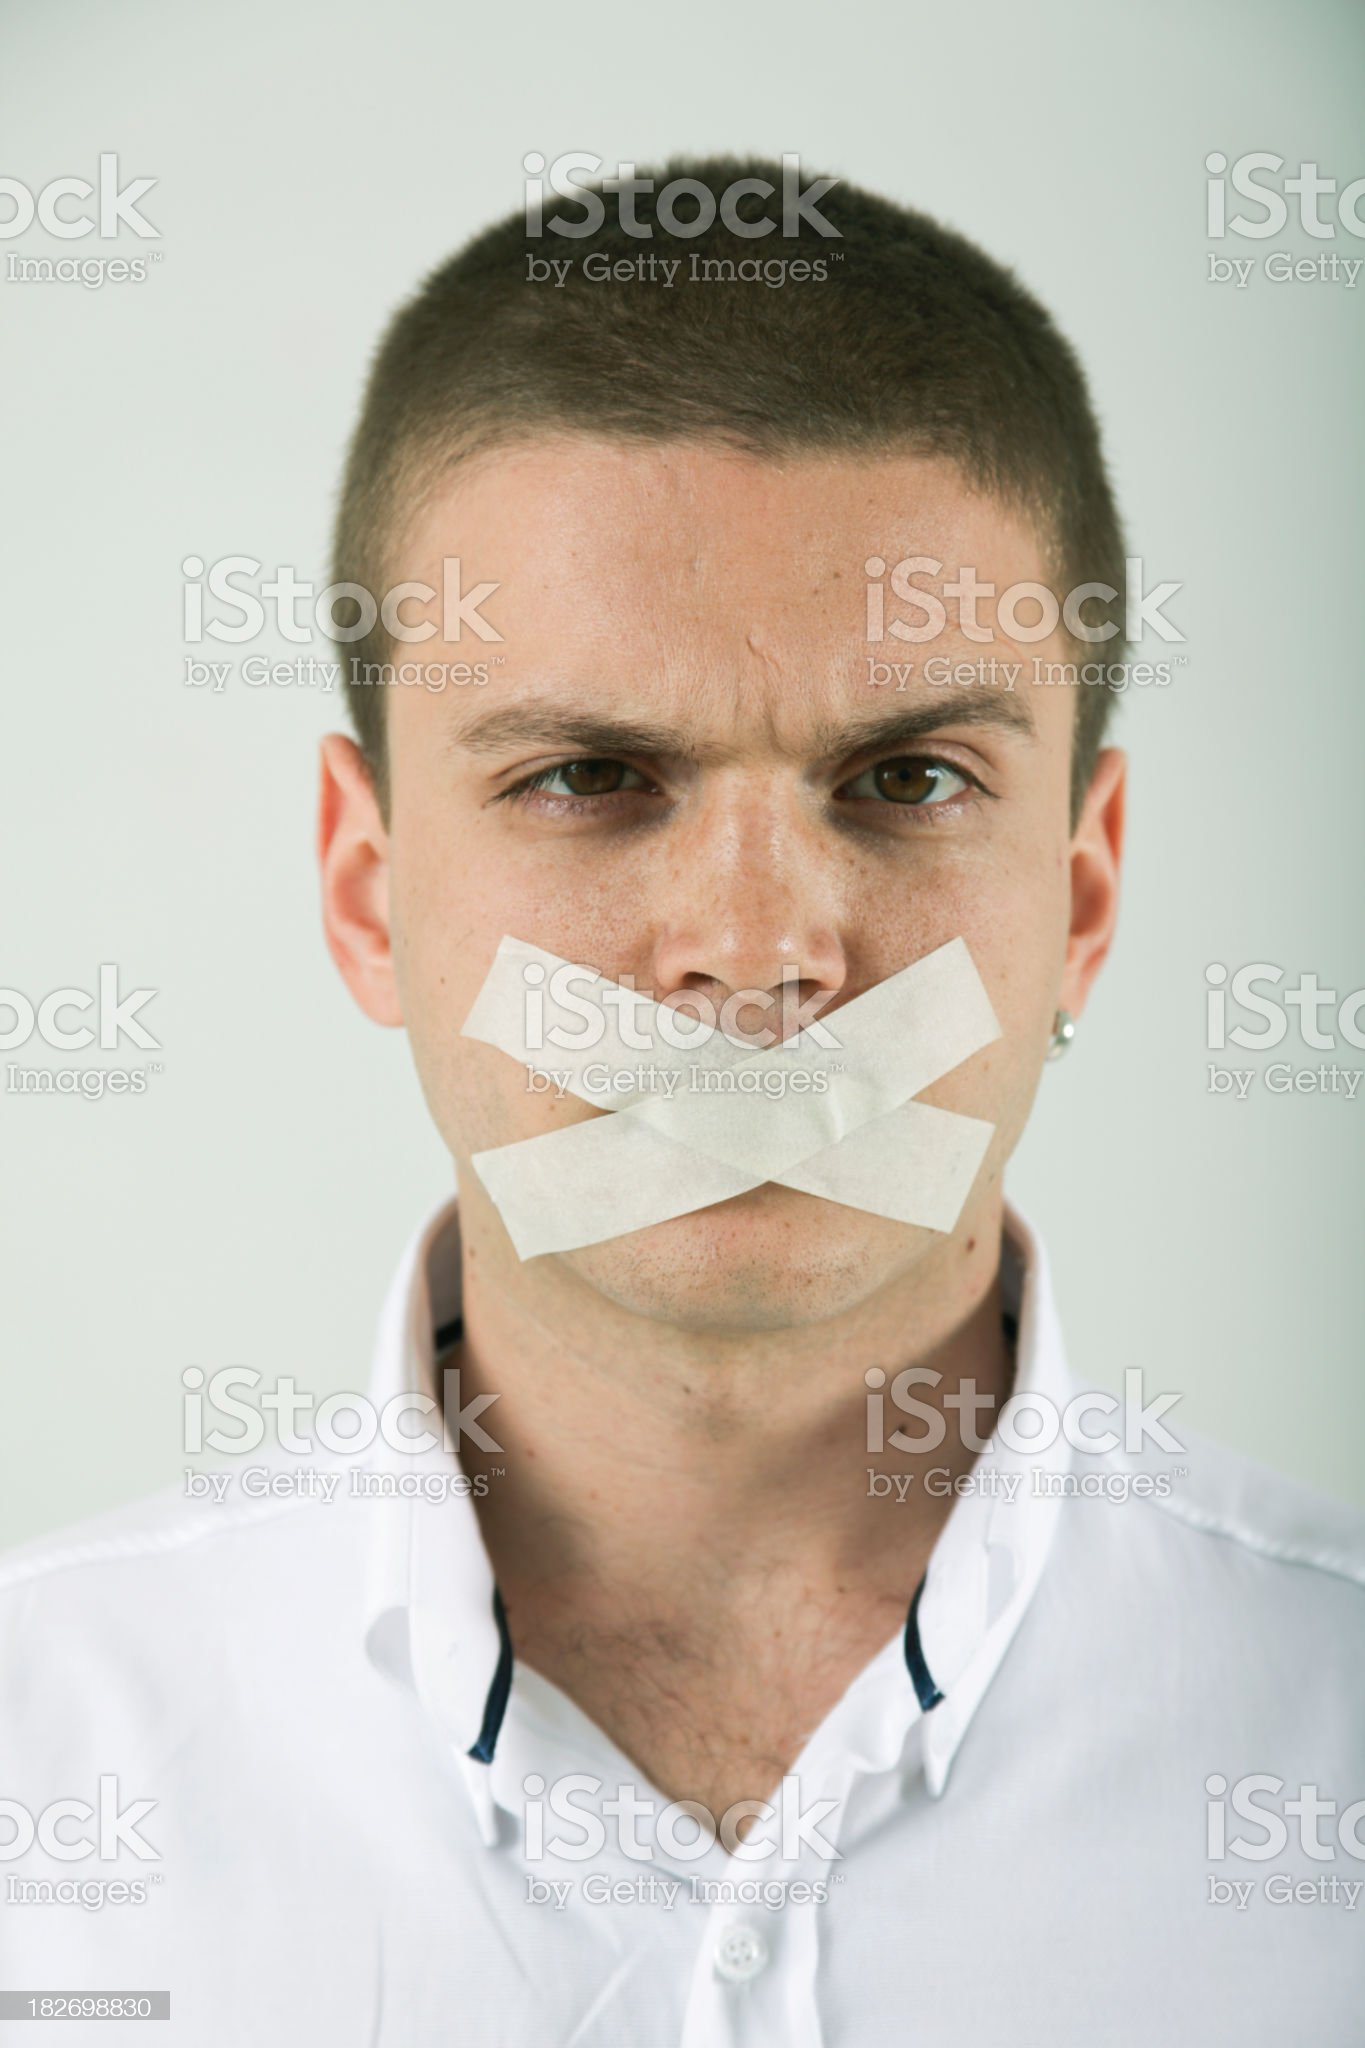 Banned Young Man royalty-free stock photo